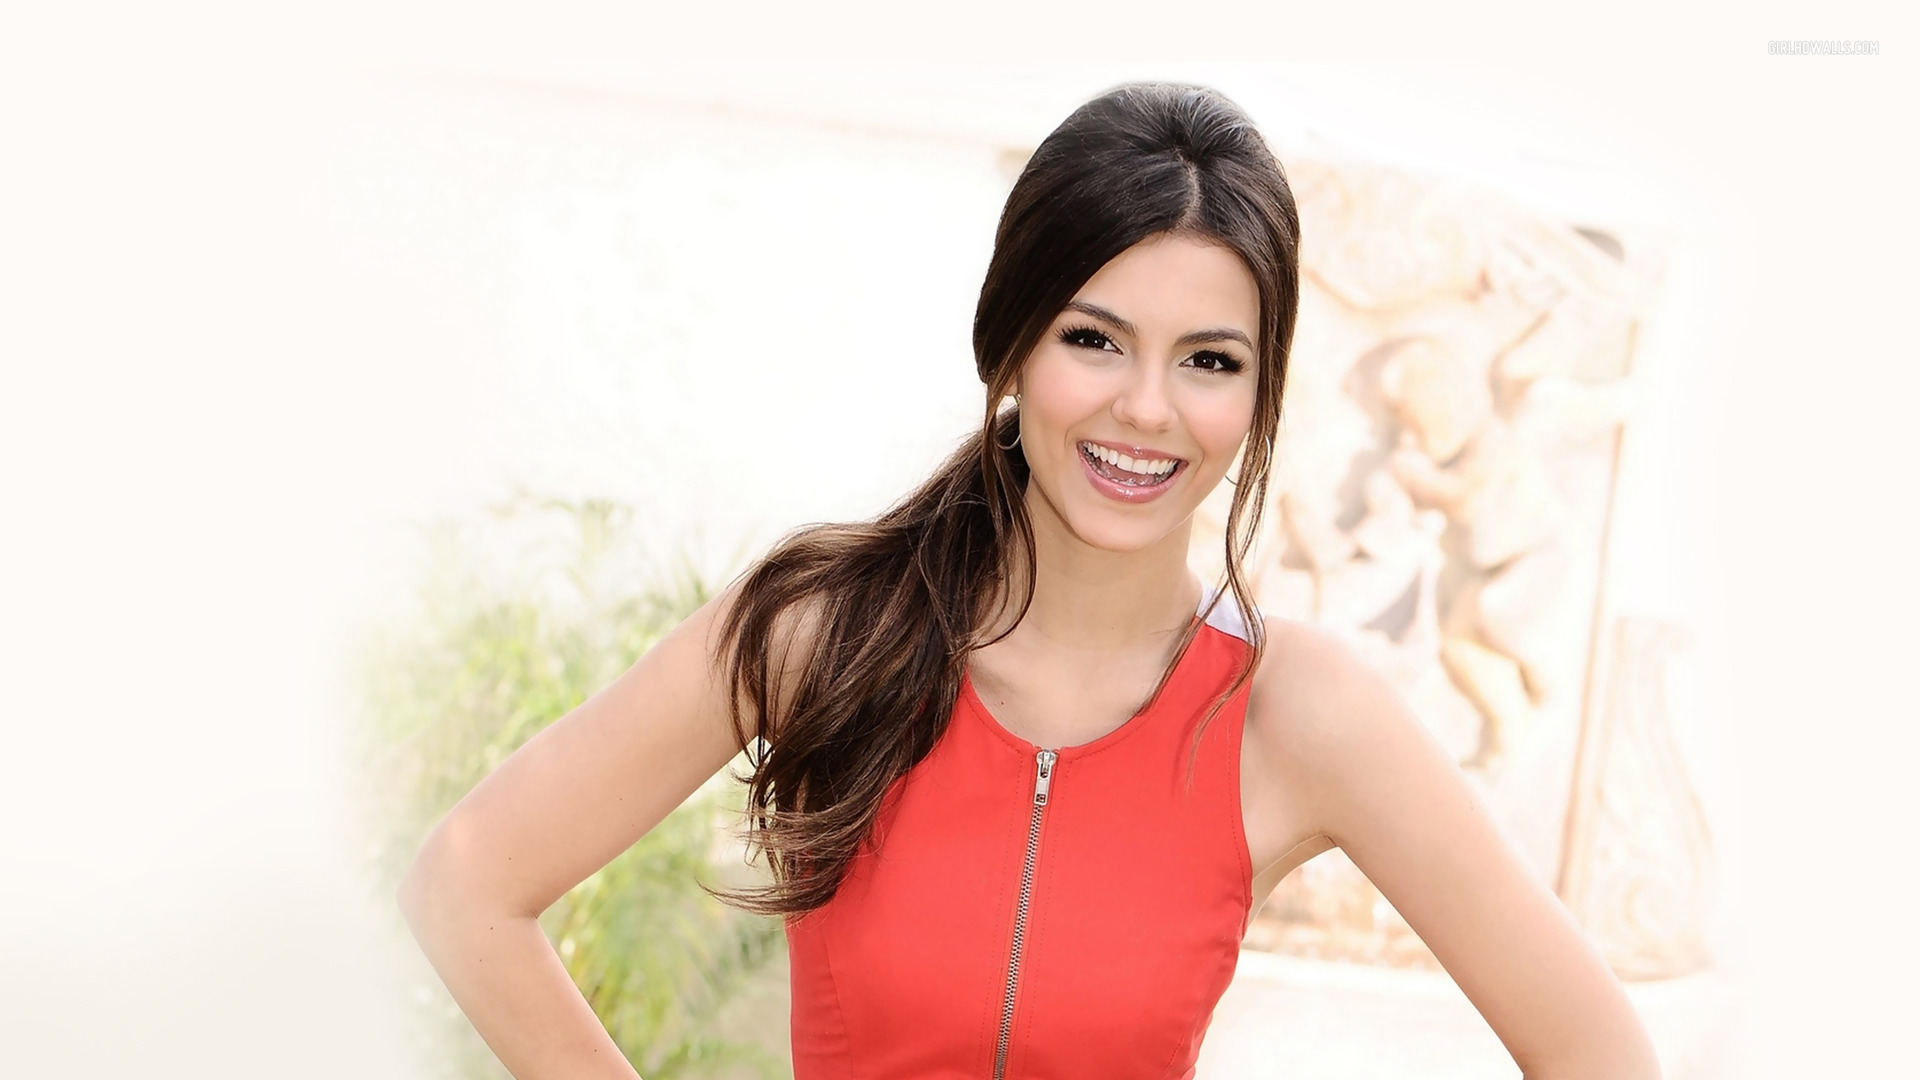 Victoria Justice Photoshoot Wallpaper Wallpapers Pictures 1920x1080